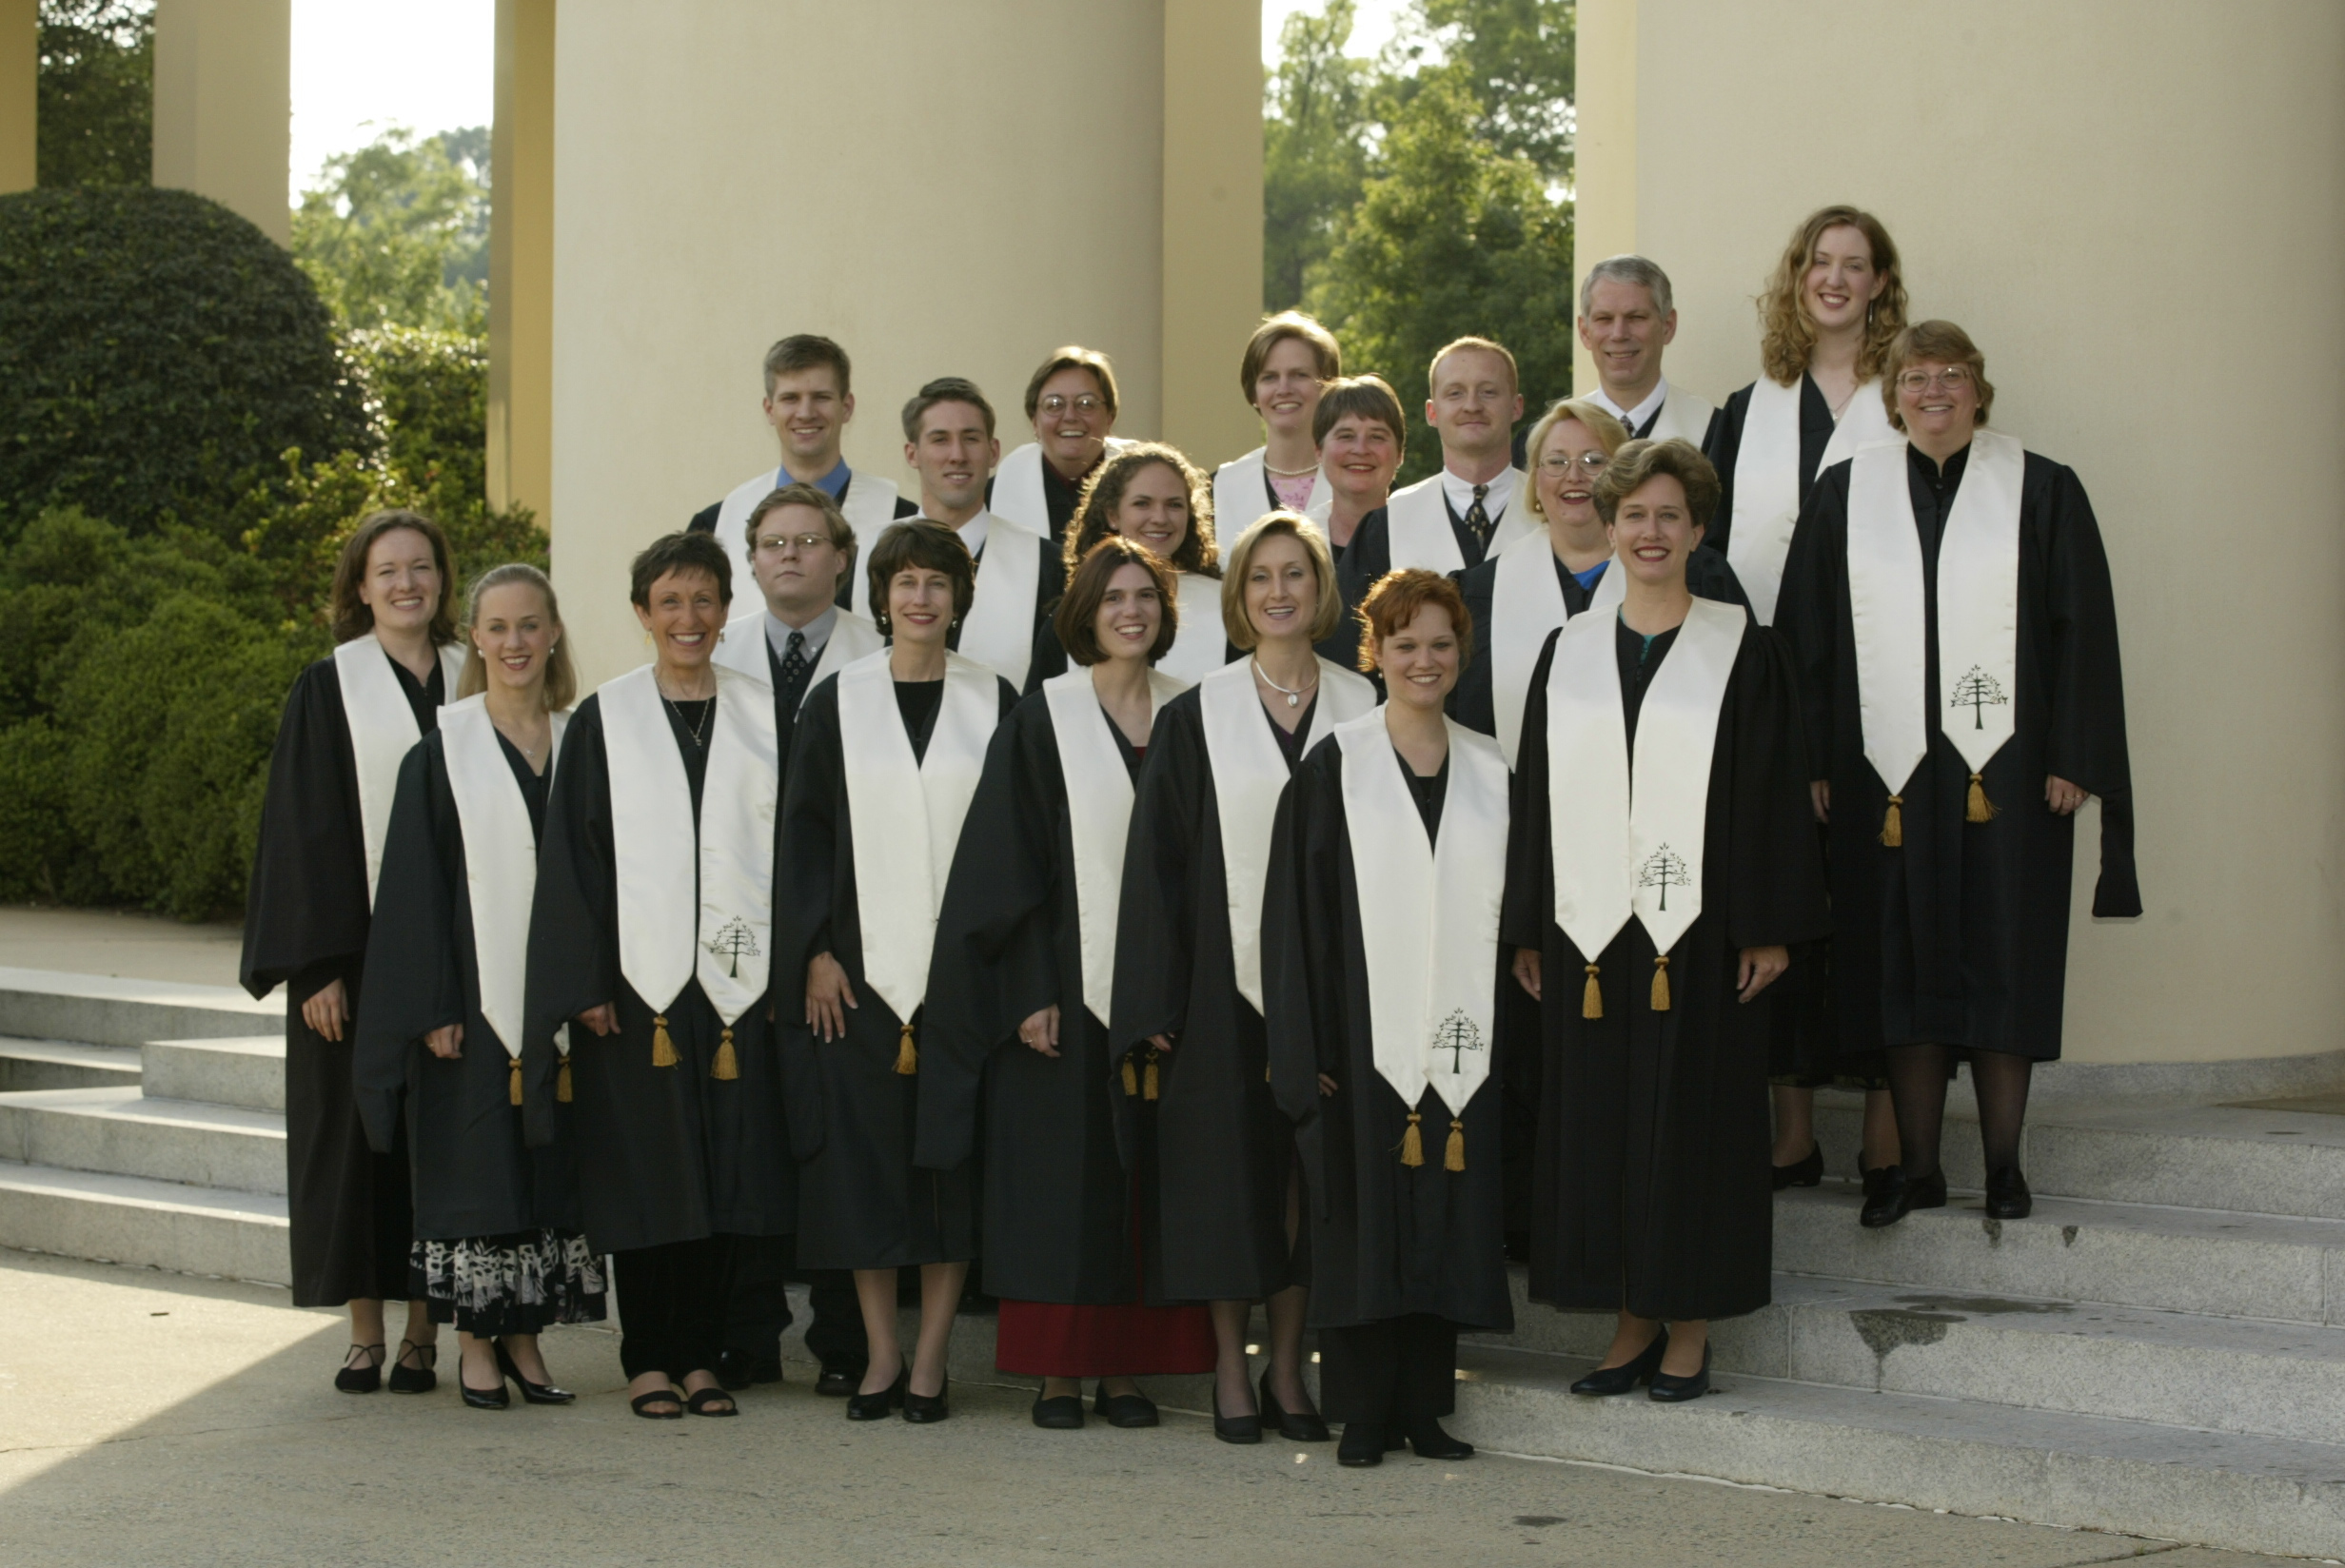 Inaugural Master of Divinity graduating class, 2002